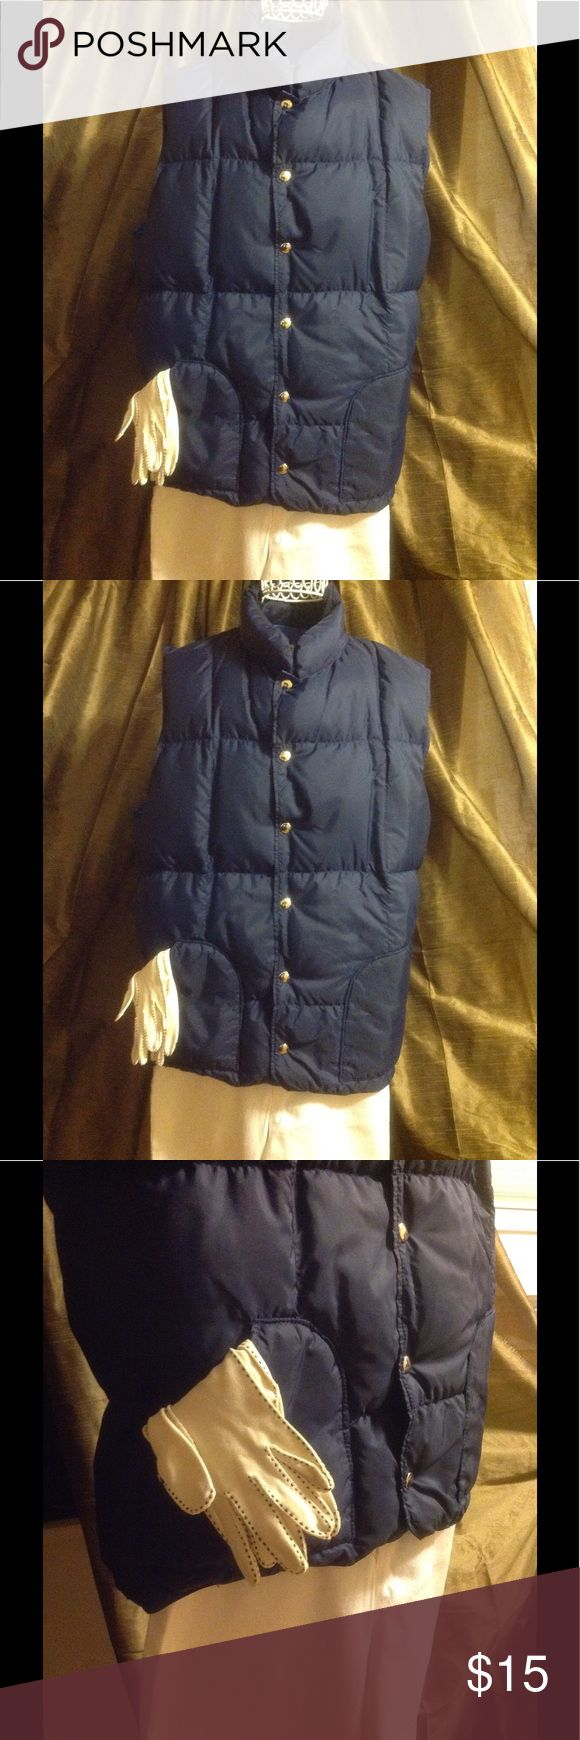 """Sierra Designs Puffy Down Vest Packable Blue LARGE Sierra Designs Down Vest Color: Navy Blue Size: Women's Large Measurement: Shoulder to Shoulder: 16"""" Neck to Hem 30""""  This is a really well taken care of Sierra Designs Down Vest. The closures are snaps, and all are working perfectly. There is no Down rating tag on the vest. It was given to me by a friend, but it's too big for me.  The gloves are vintage white gloves and are in another listing of mine. The pants are new with tags Gloria…"""